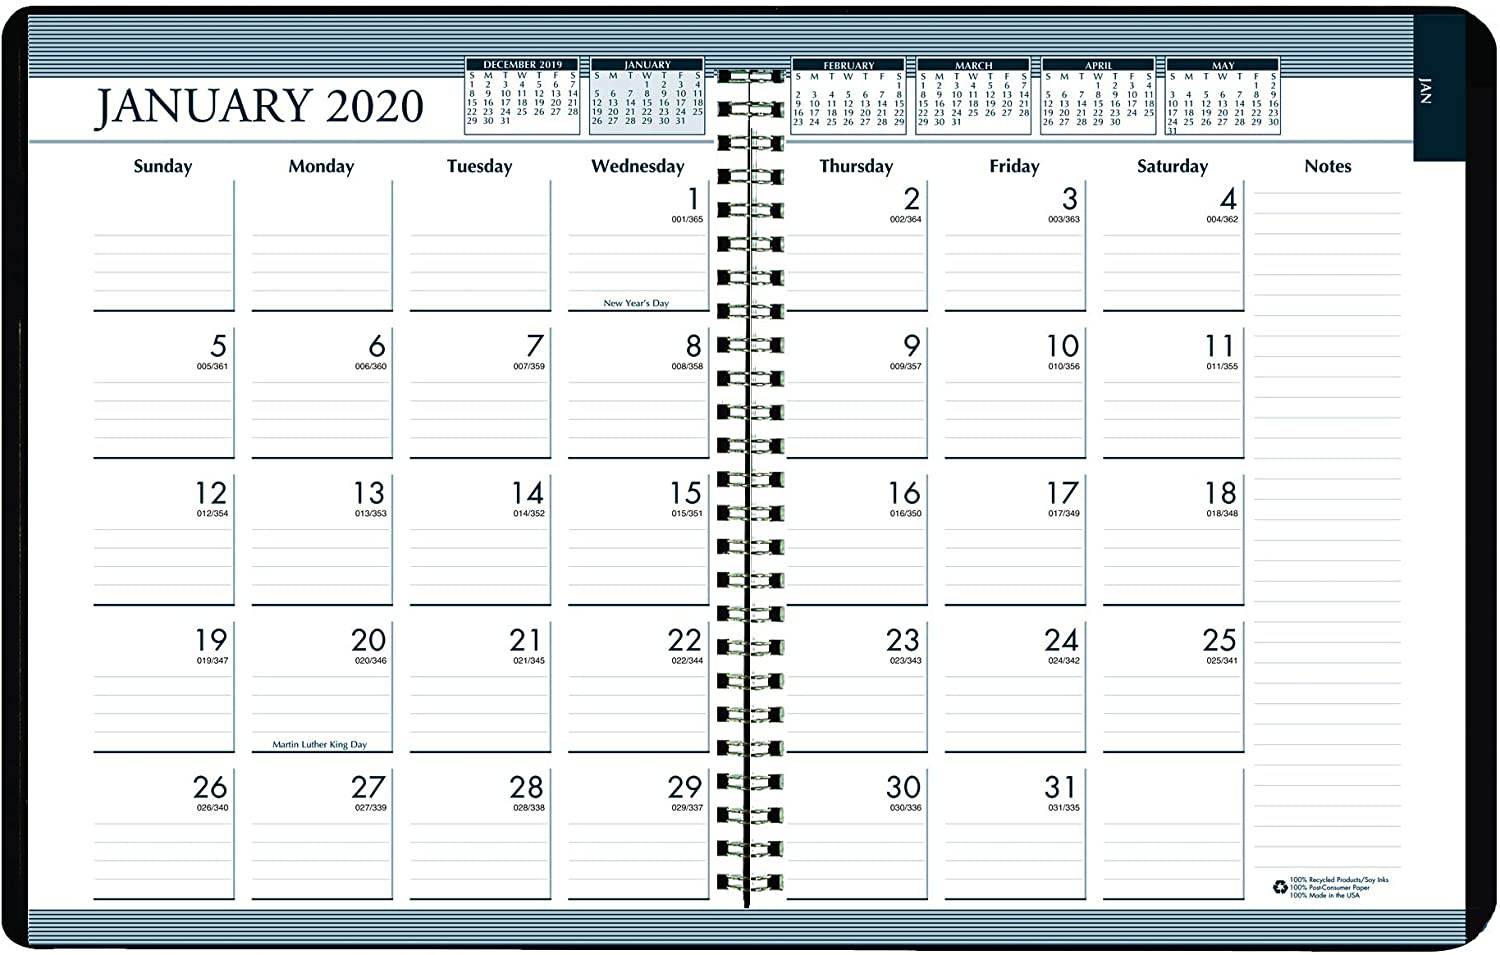 House of Doolittle 2020 Weekly and Monthly Planner Calendar, Black Cover, Tabbed, 8.5 x 11 Inches, January - December (HOD28302-20)